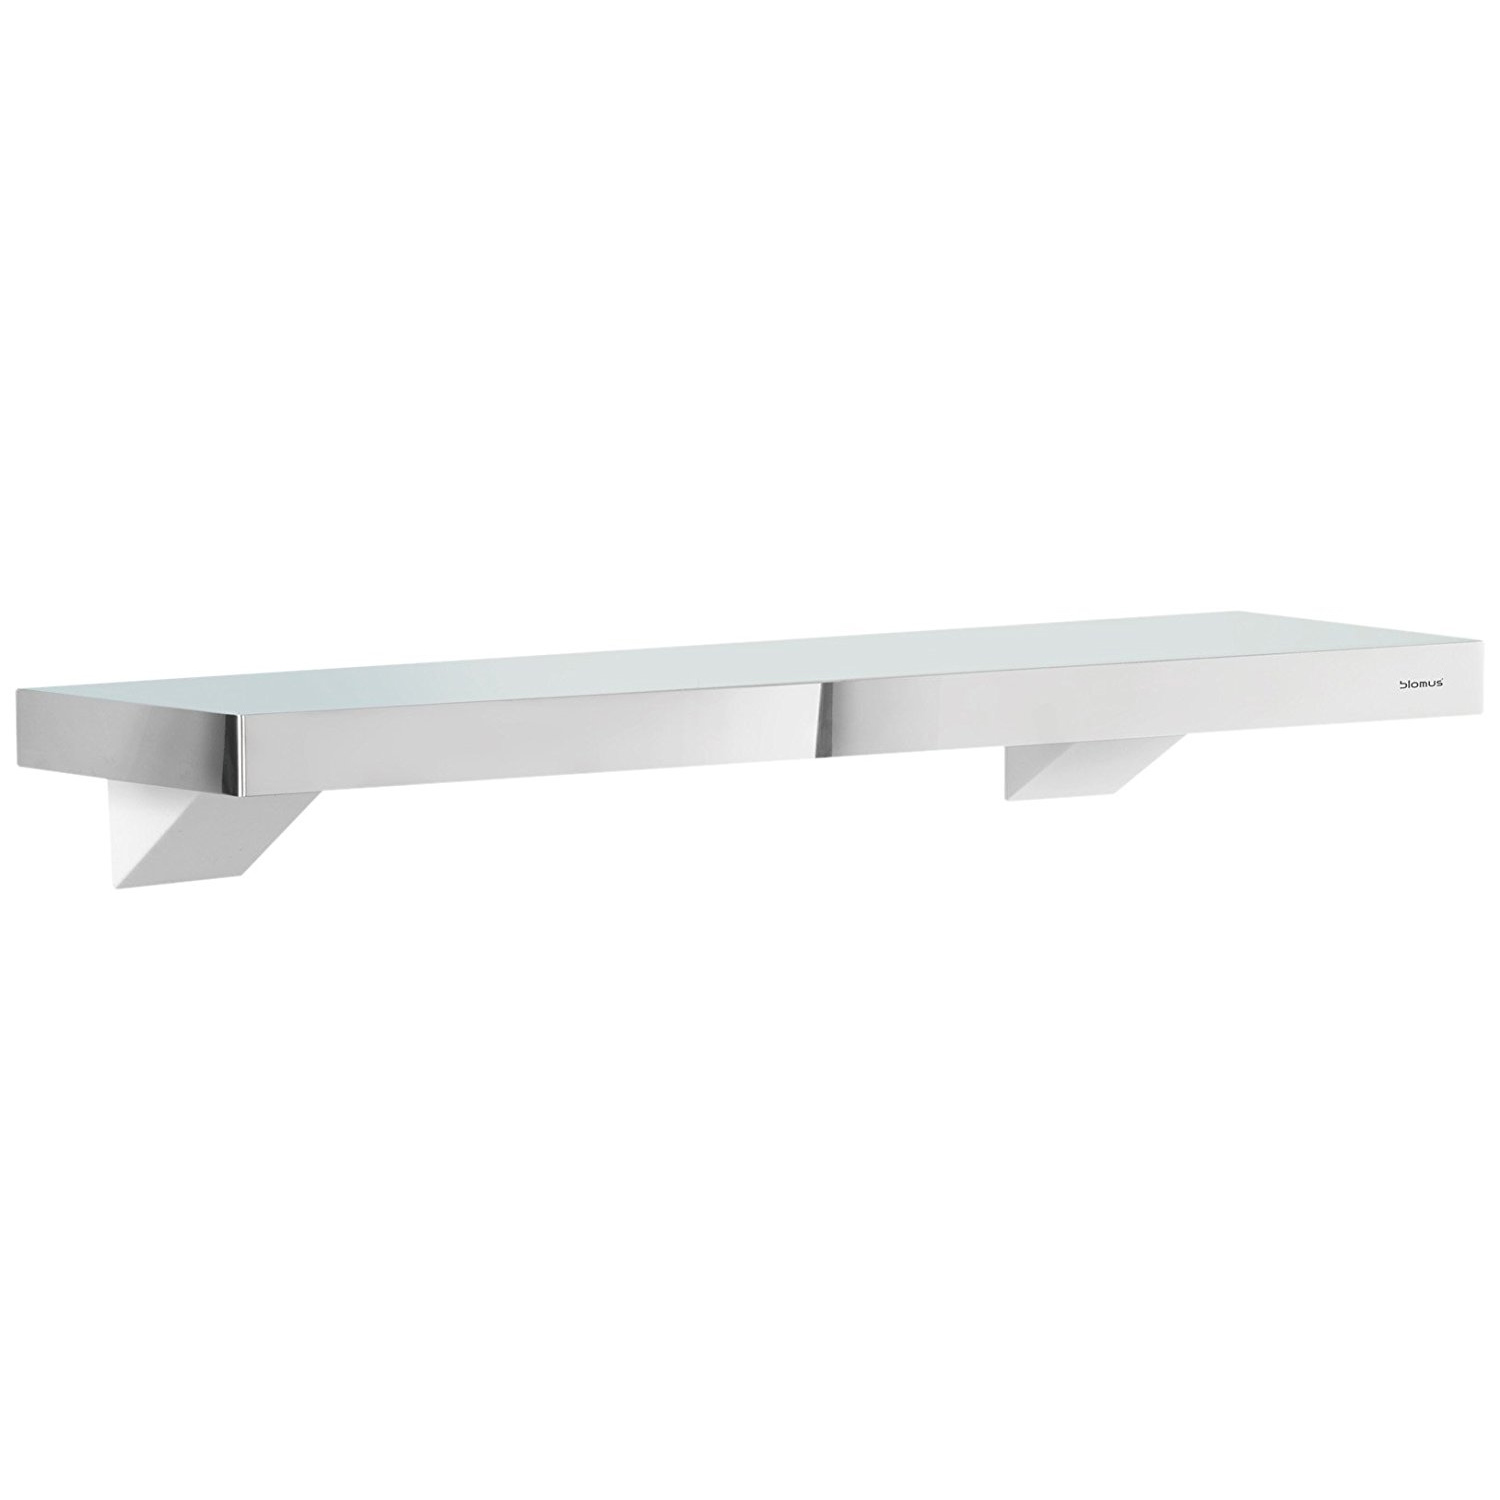 Blomus SENTO Bathroom Shelf Polished